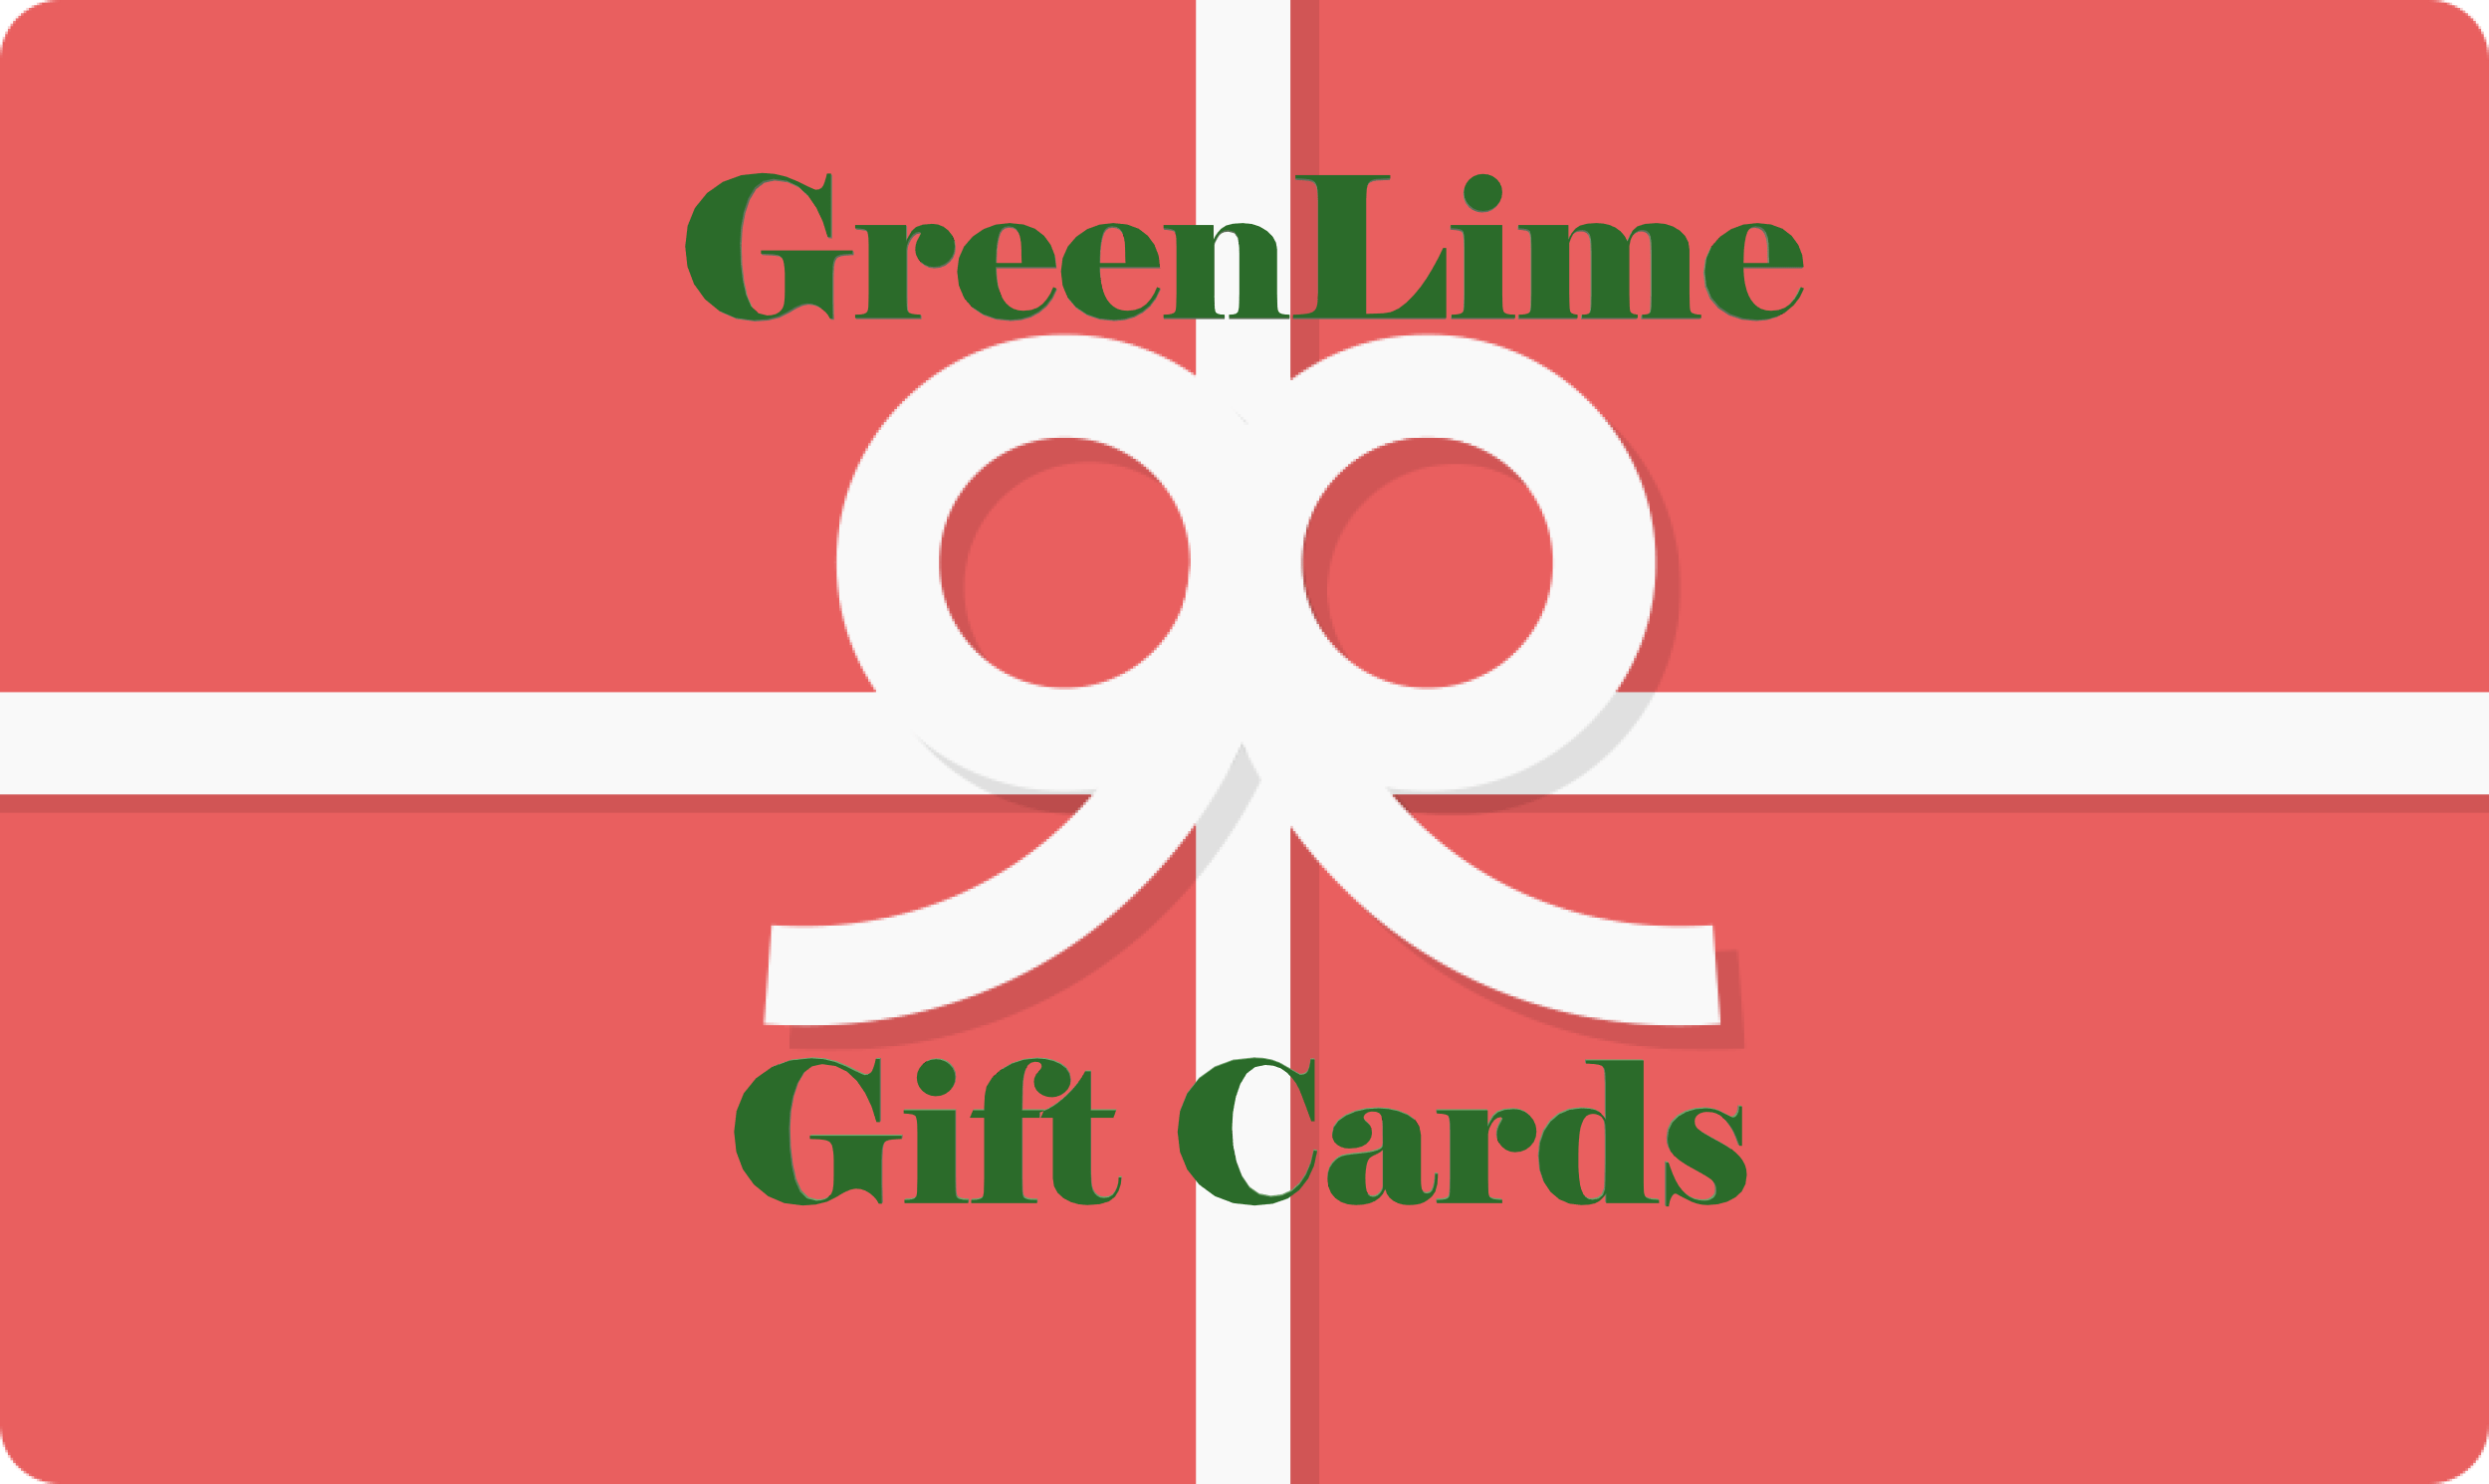 GreenLime Gift Cards